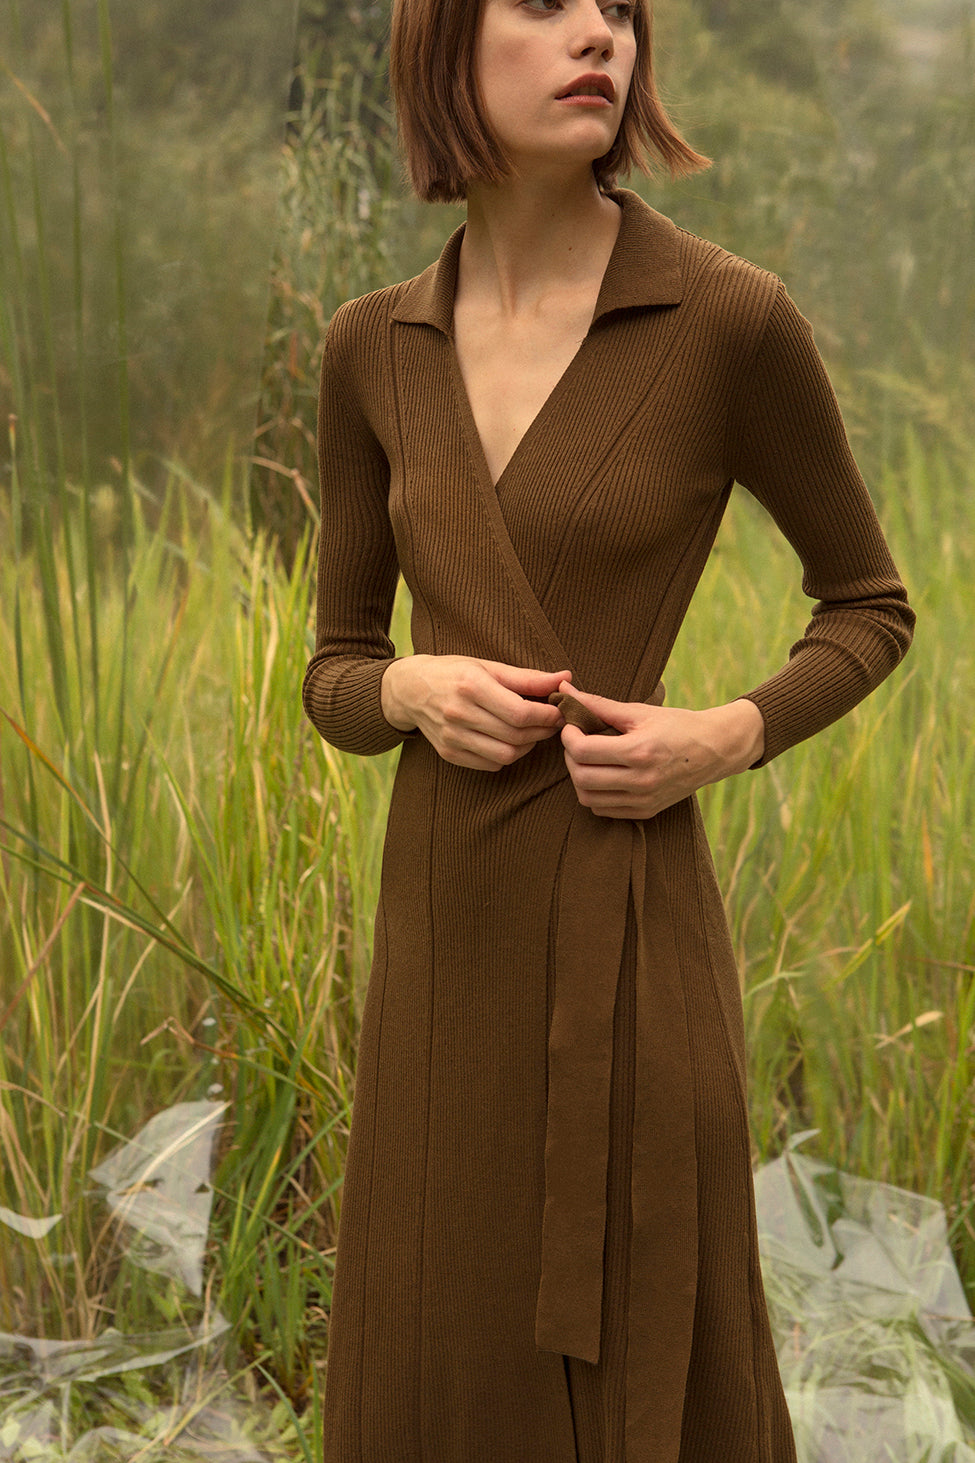 Wrap dress with deep V neckline with shawl collar. Long sleeves. Wrap front with self-tie closure at front. Full skirt. Unlined. Medium weight.